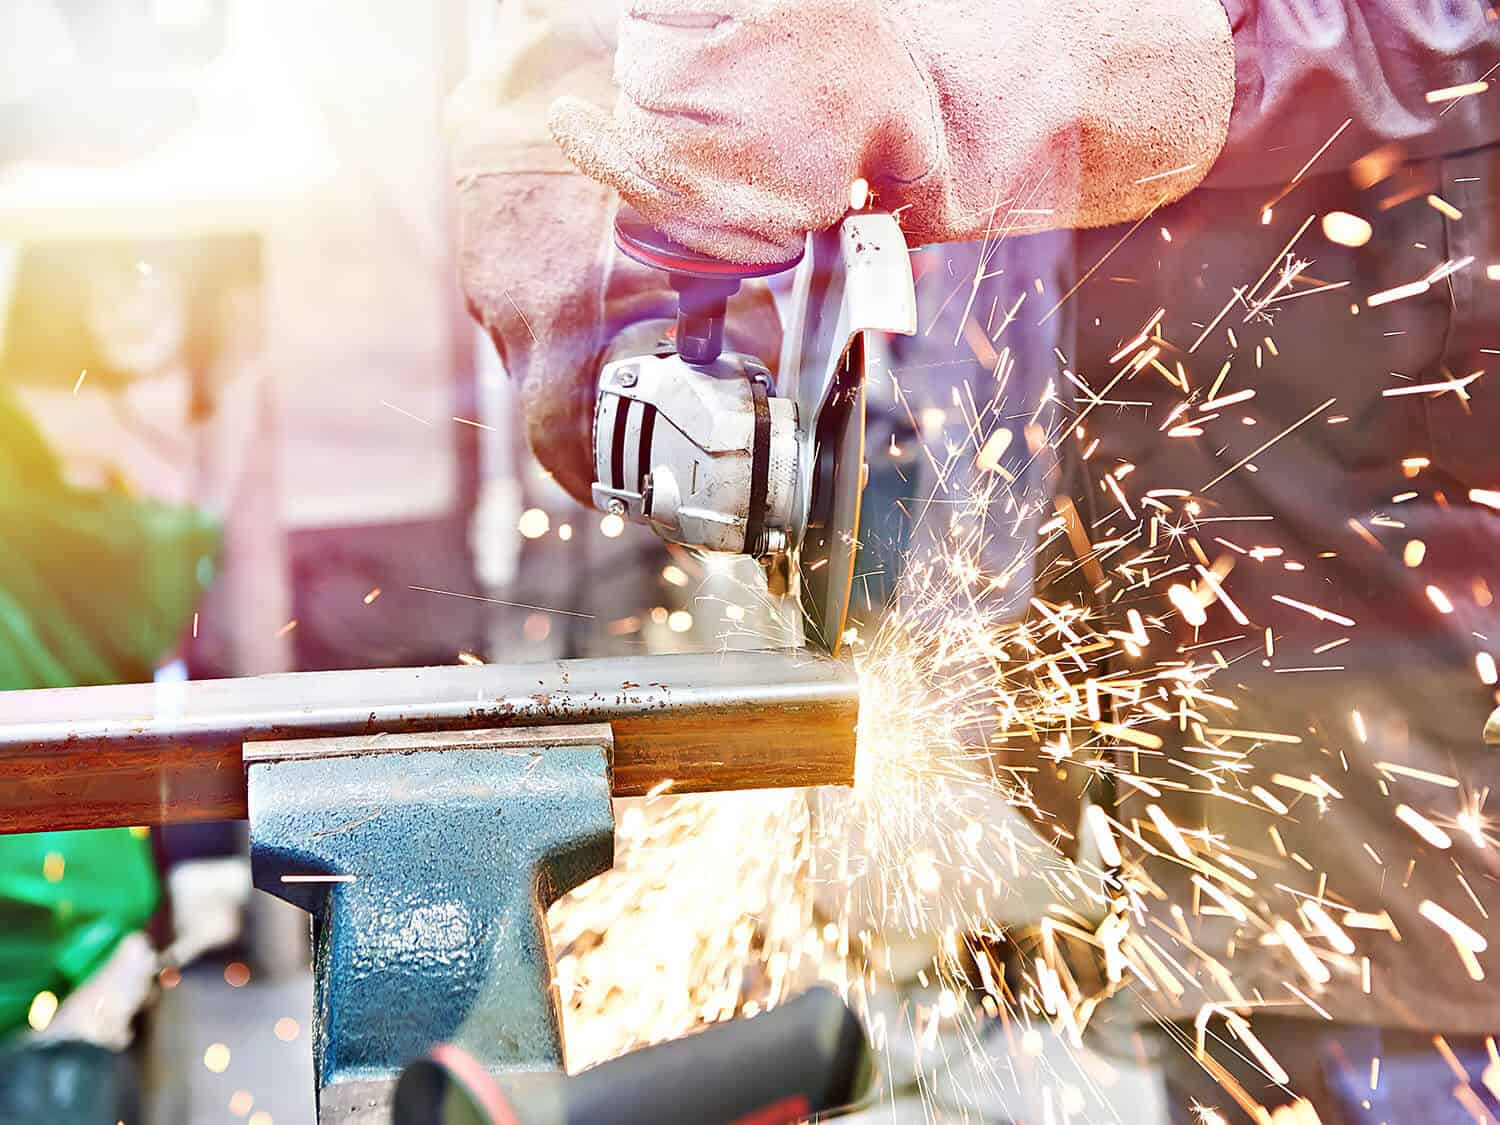 How to Cut Metal With an Angle Grinder